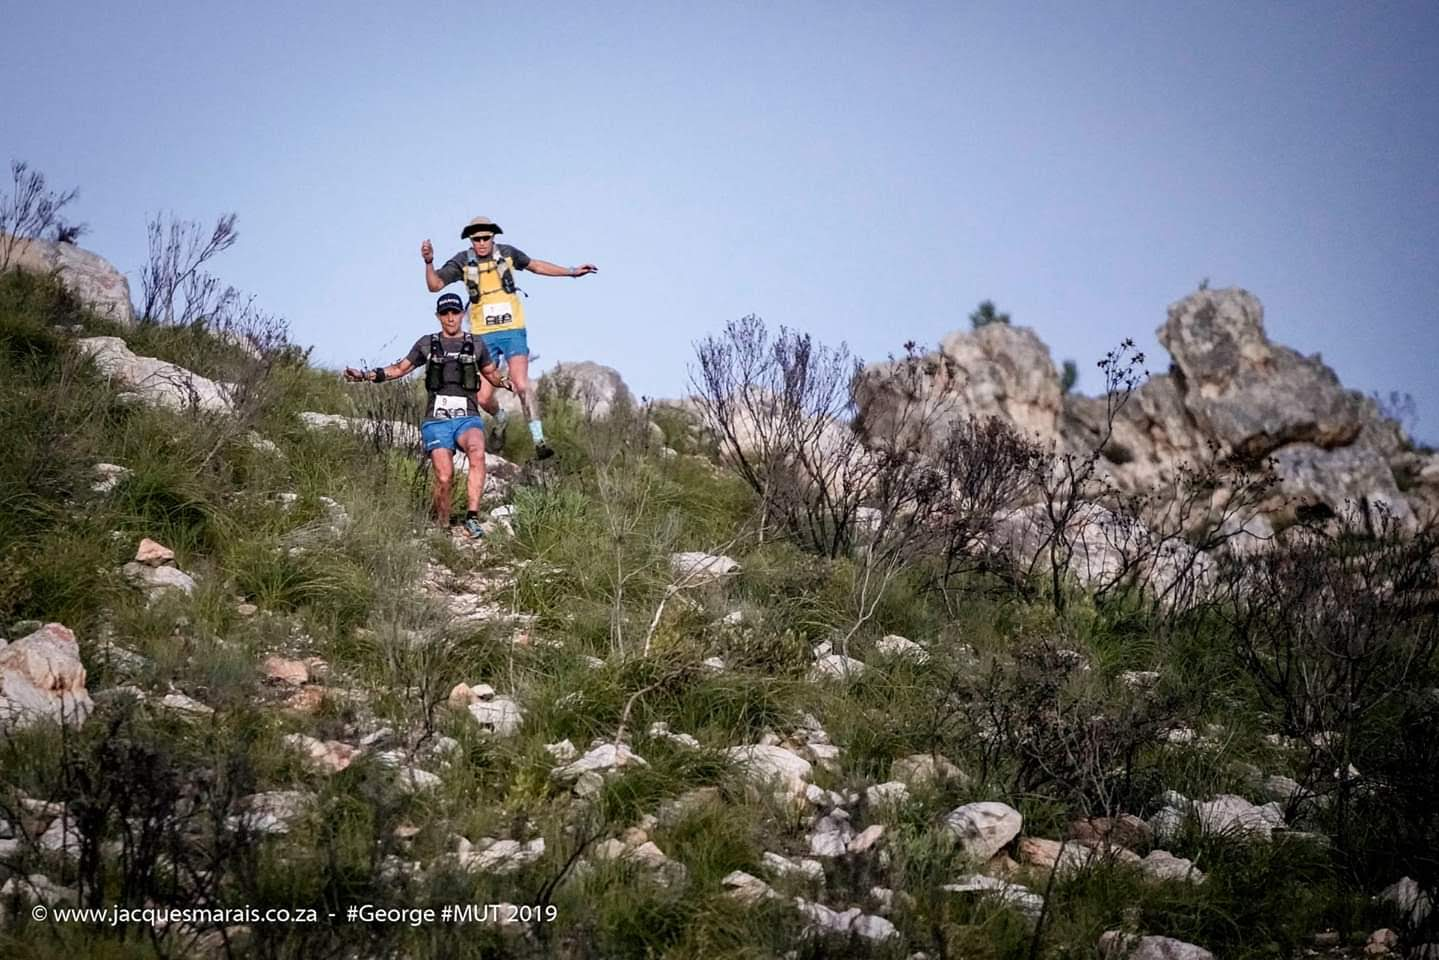 Roelof chasing Brendon down during a mountainous section of the GMUT.